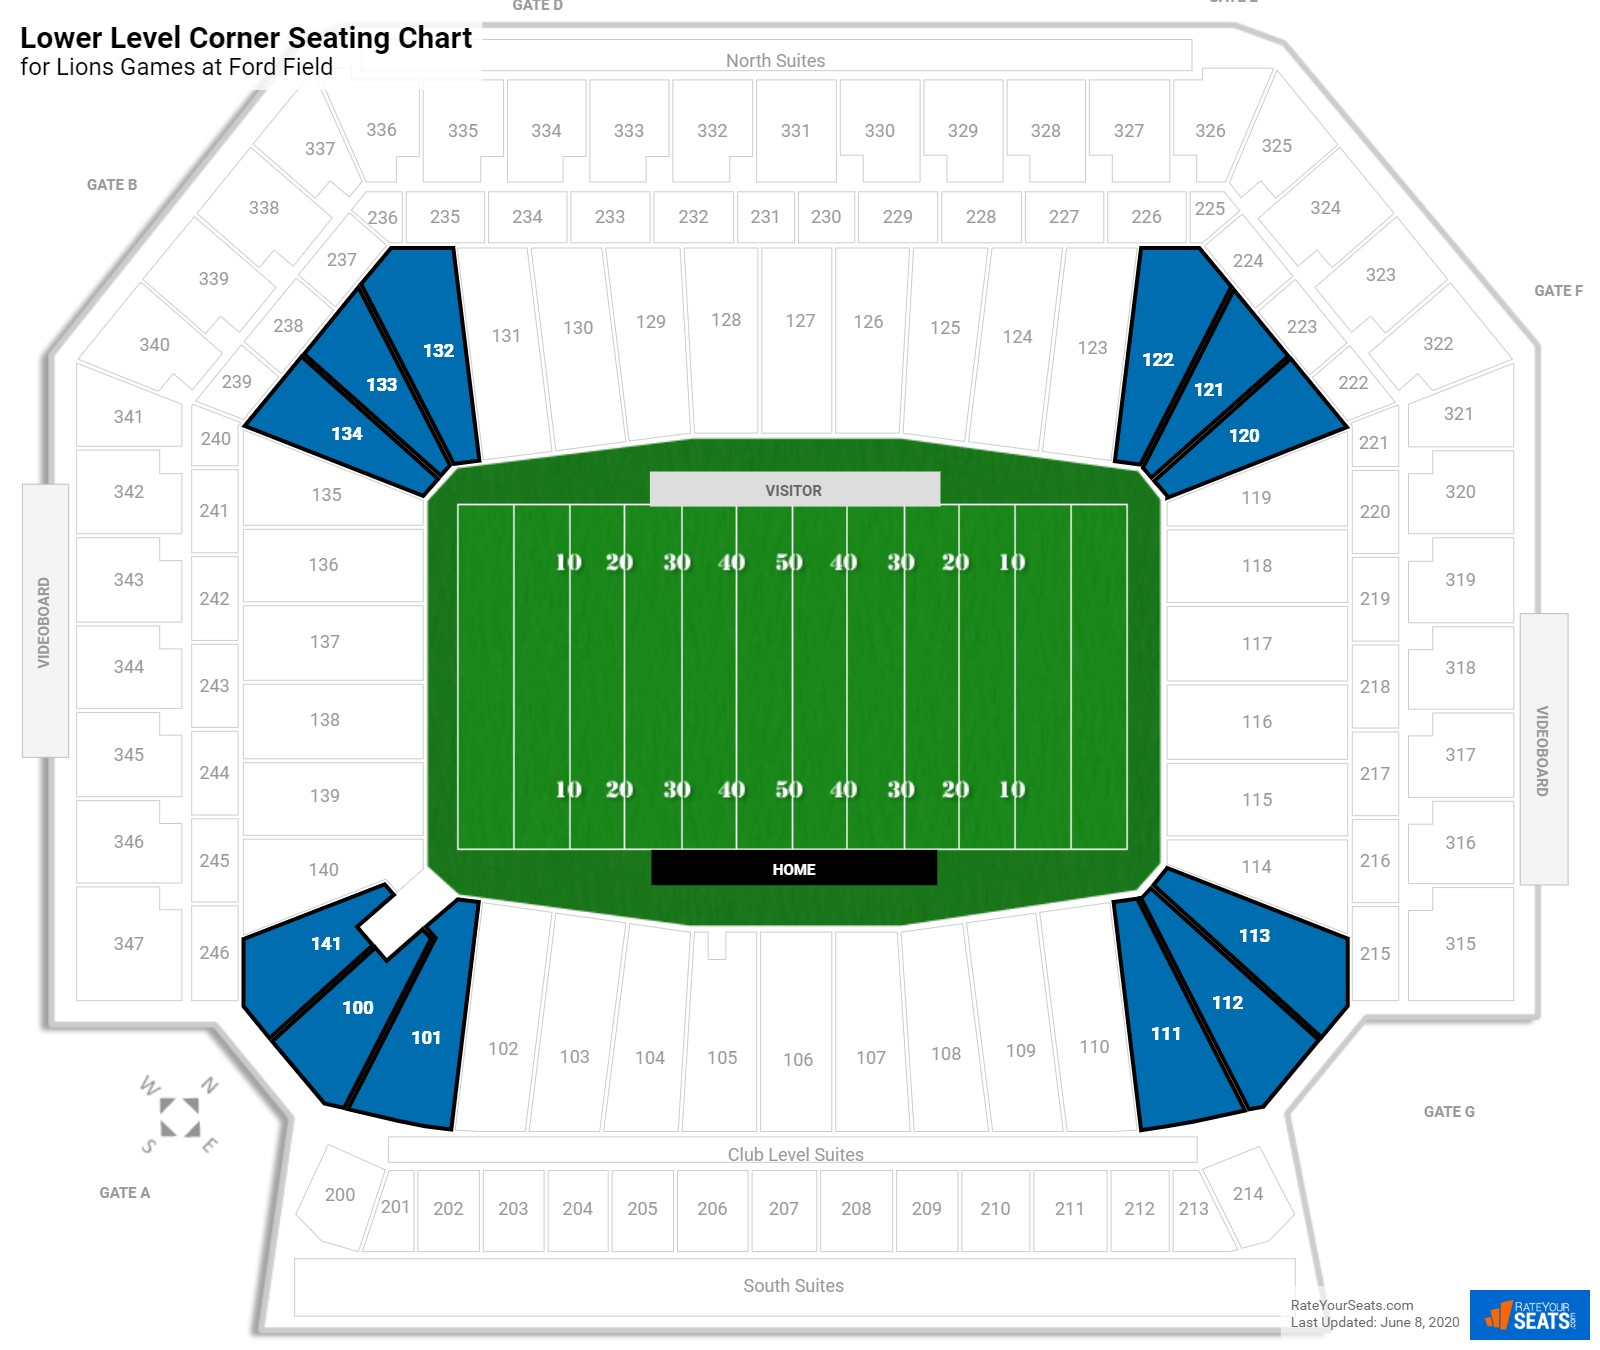 Ford Field Lower Level Corner seating chart